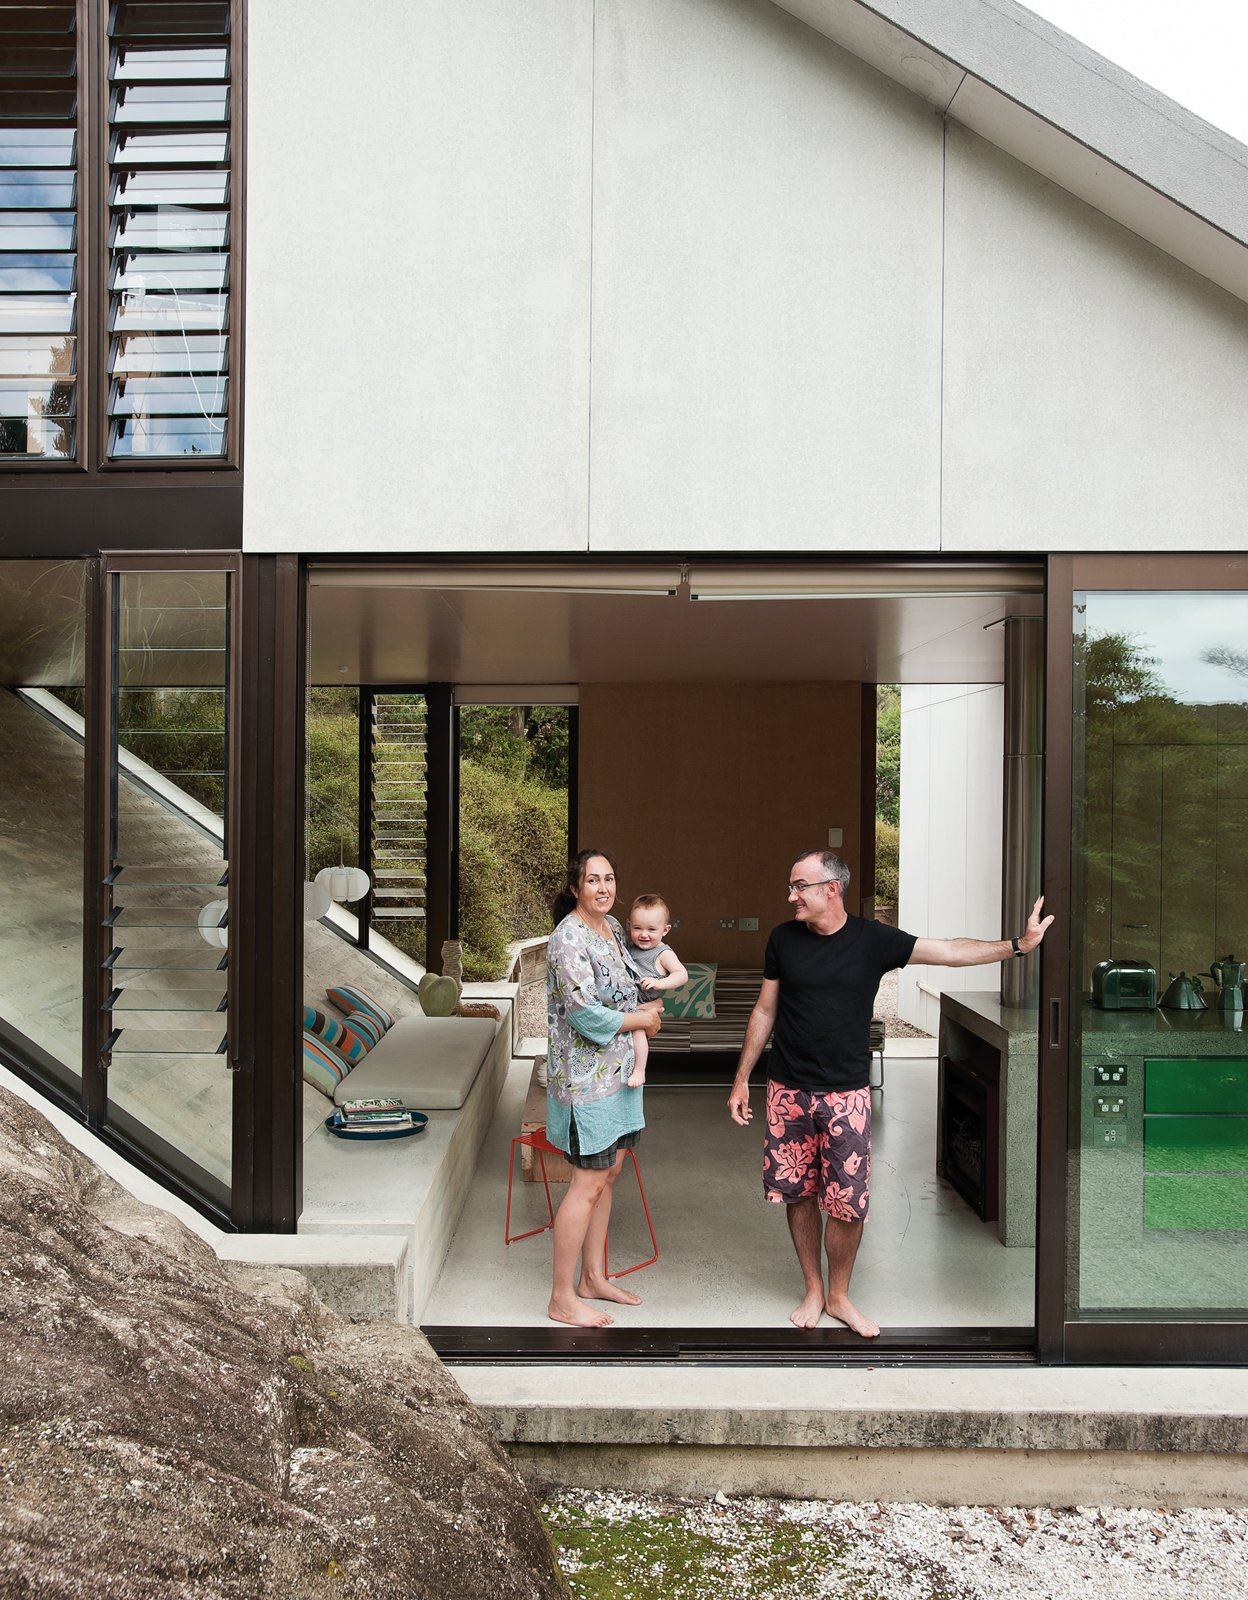 The house Amanda Yates (with her partner, Adam Rose, and their baby, Awa) designed for her parents, David and Christine, occupies a hillside site with views over Maramaratotara Bay. Make Your Parents Happy by Building Them a House - Photo 6 of 25